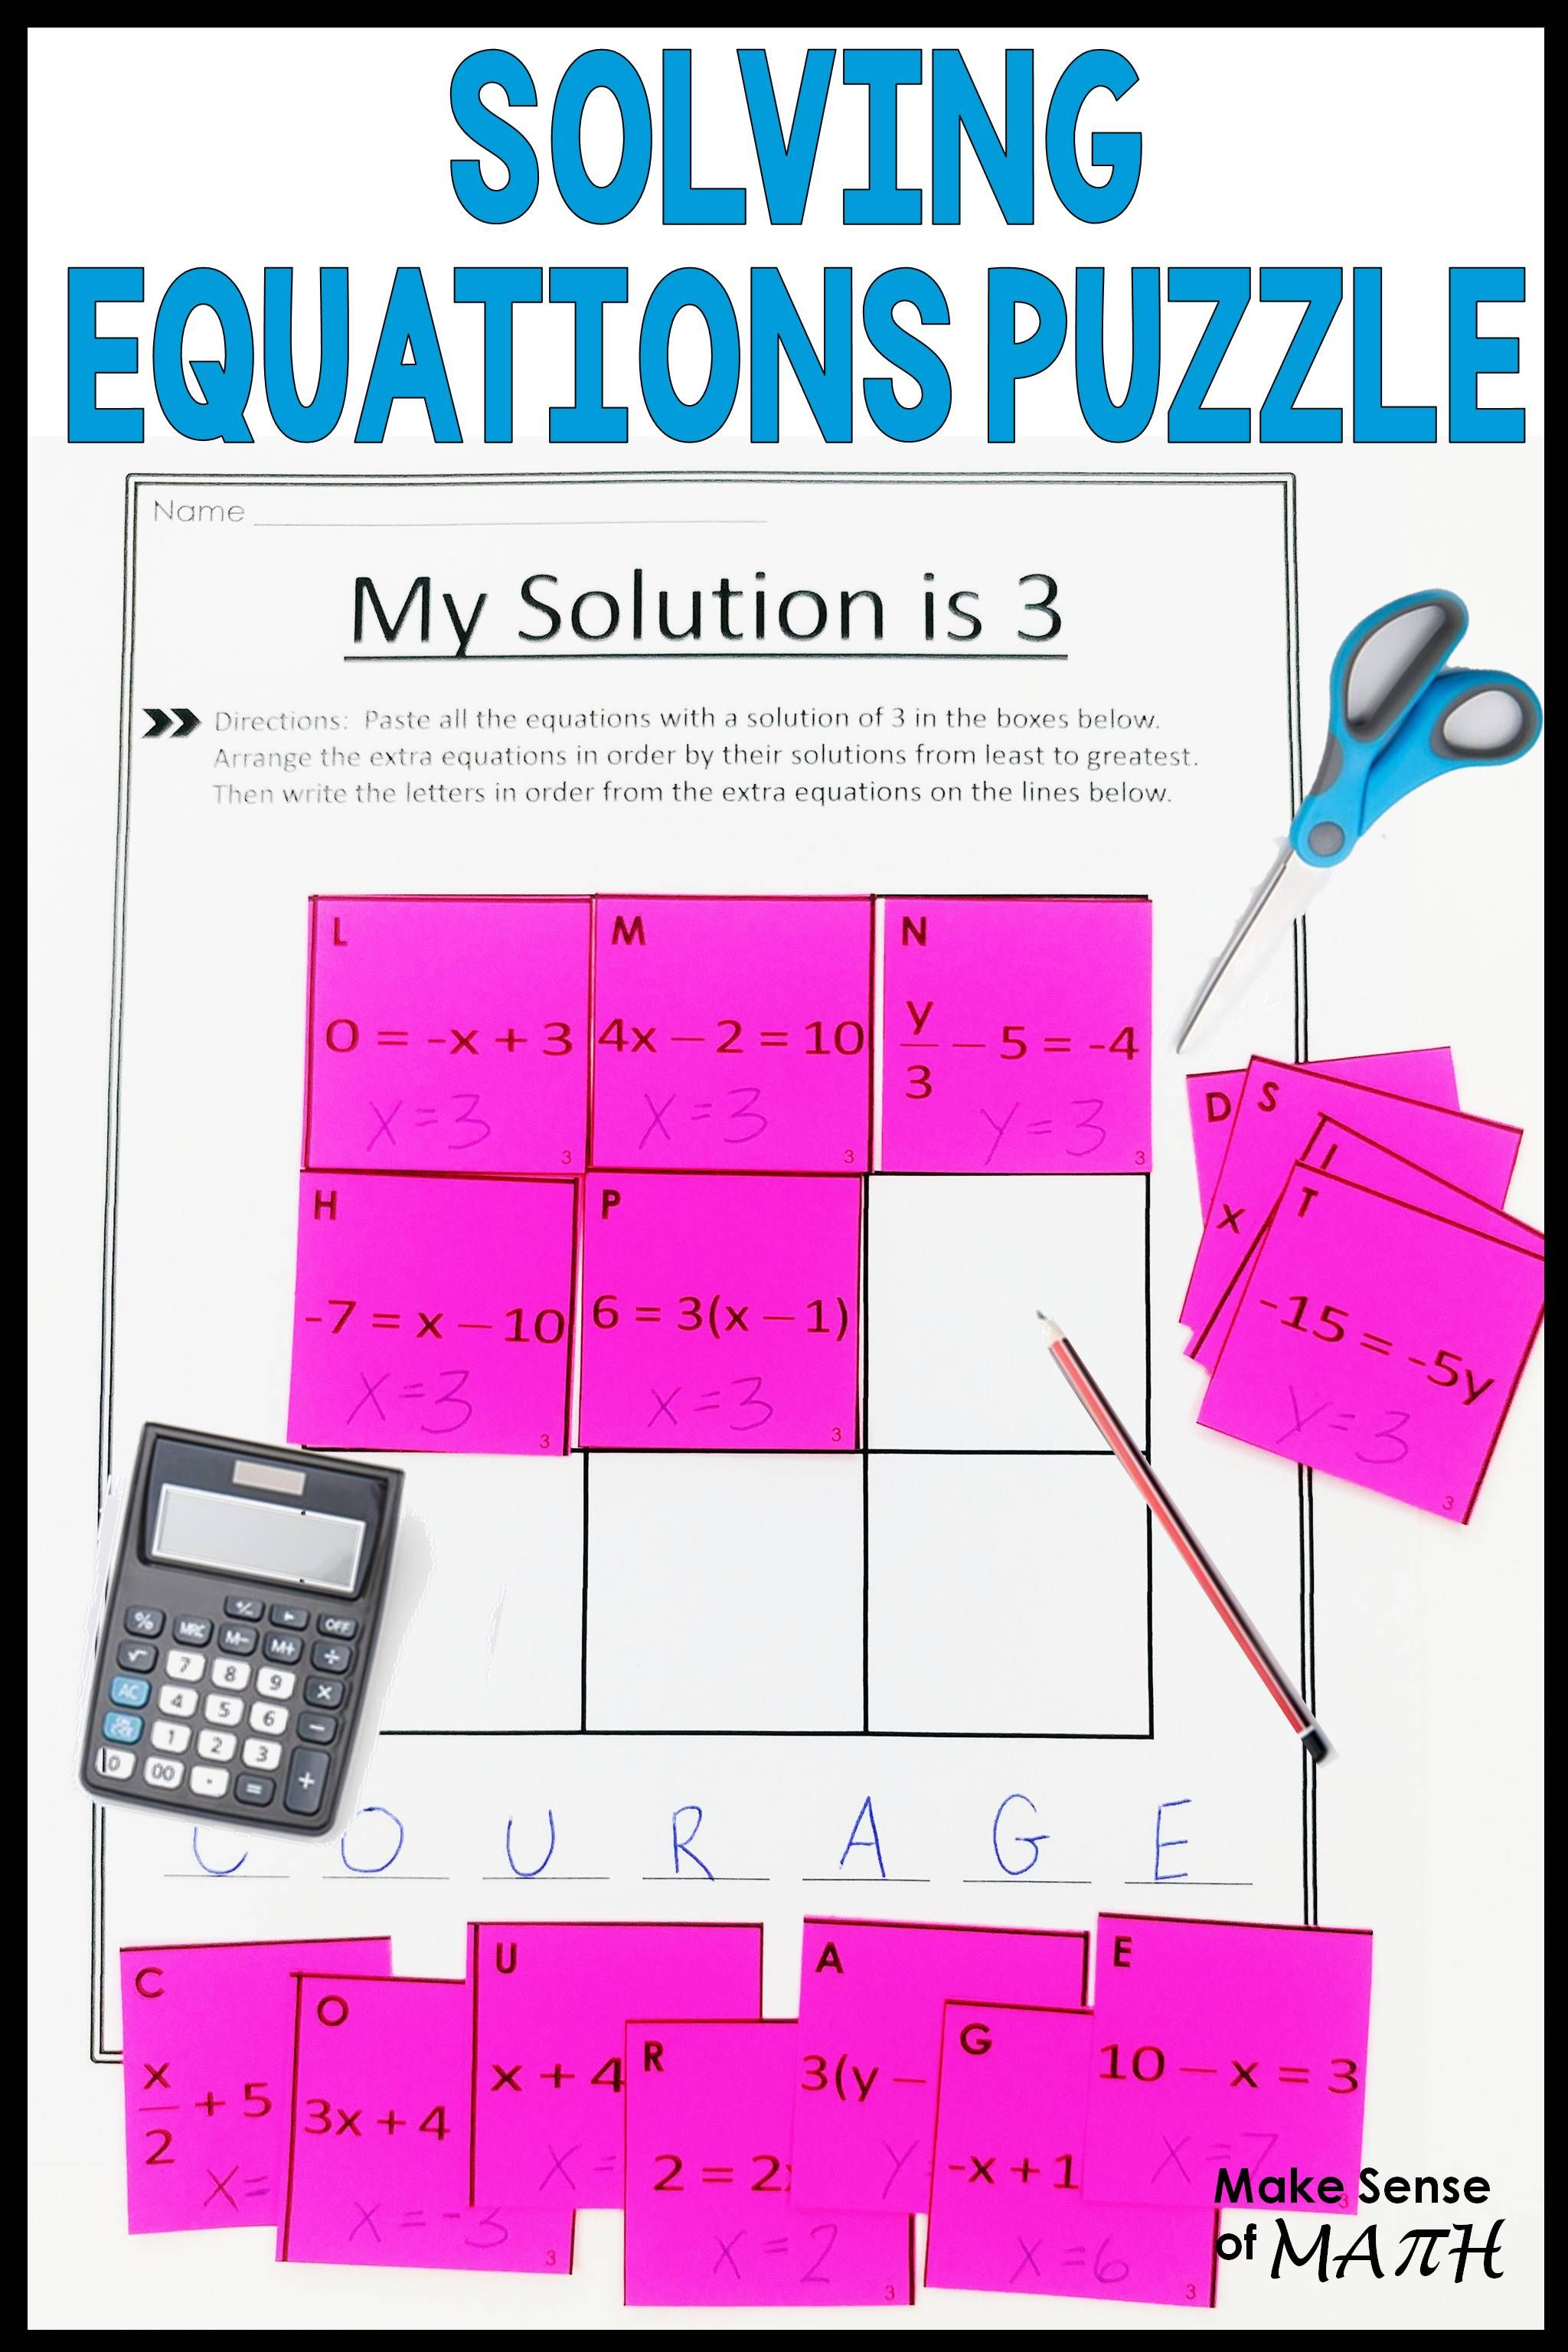 Solving Equations Puzzle